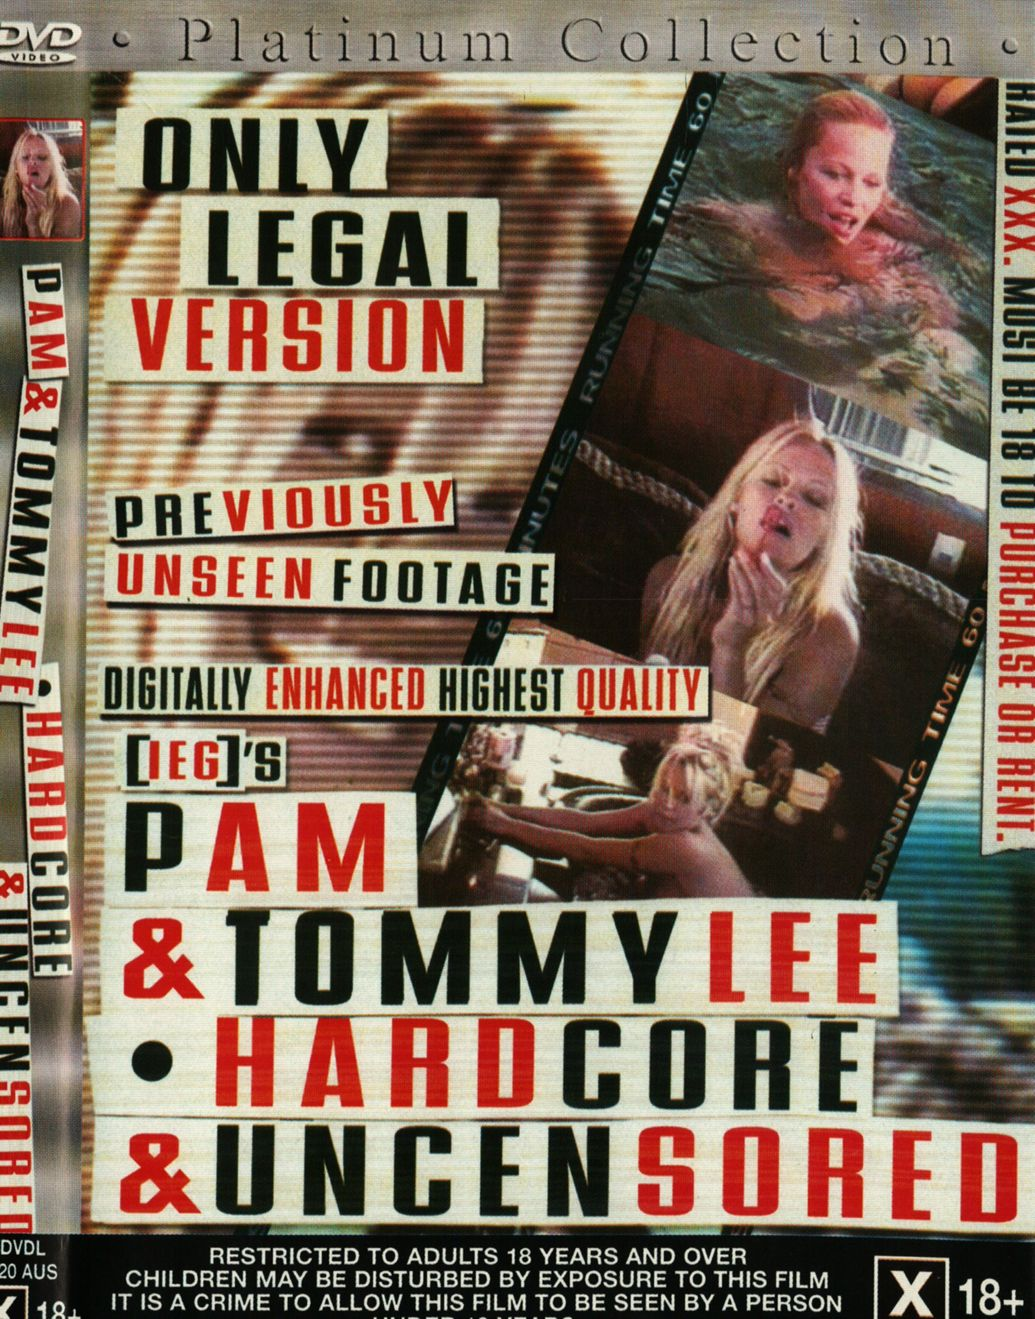 Lee pamela porno anderson and tommy